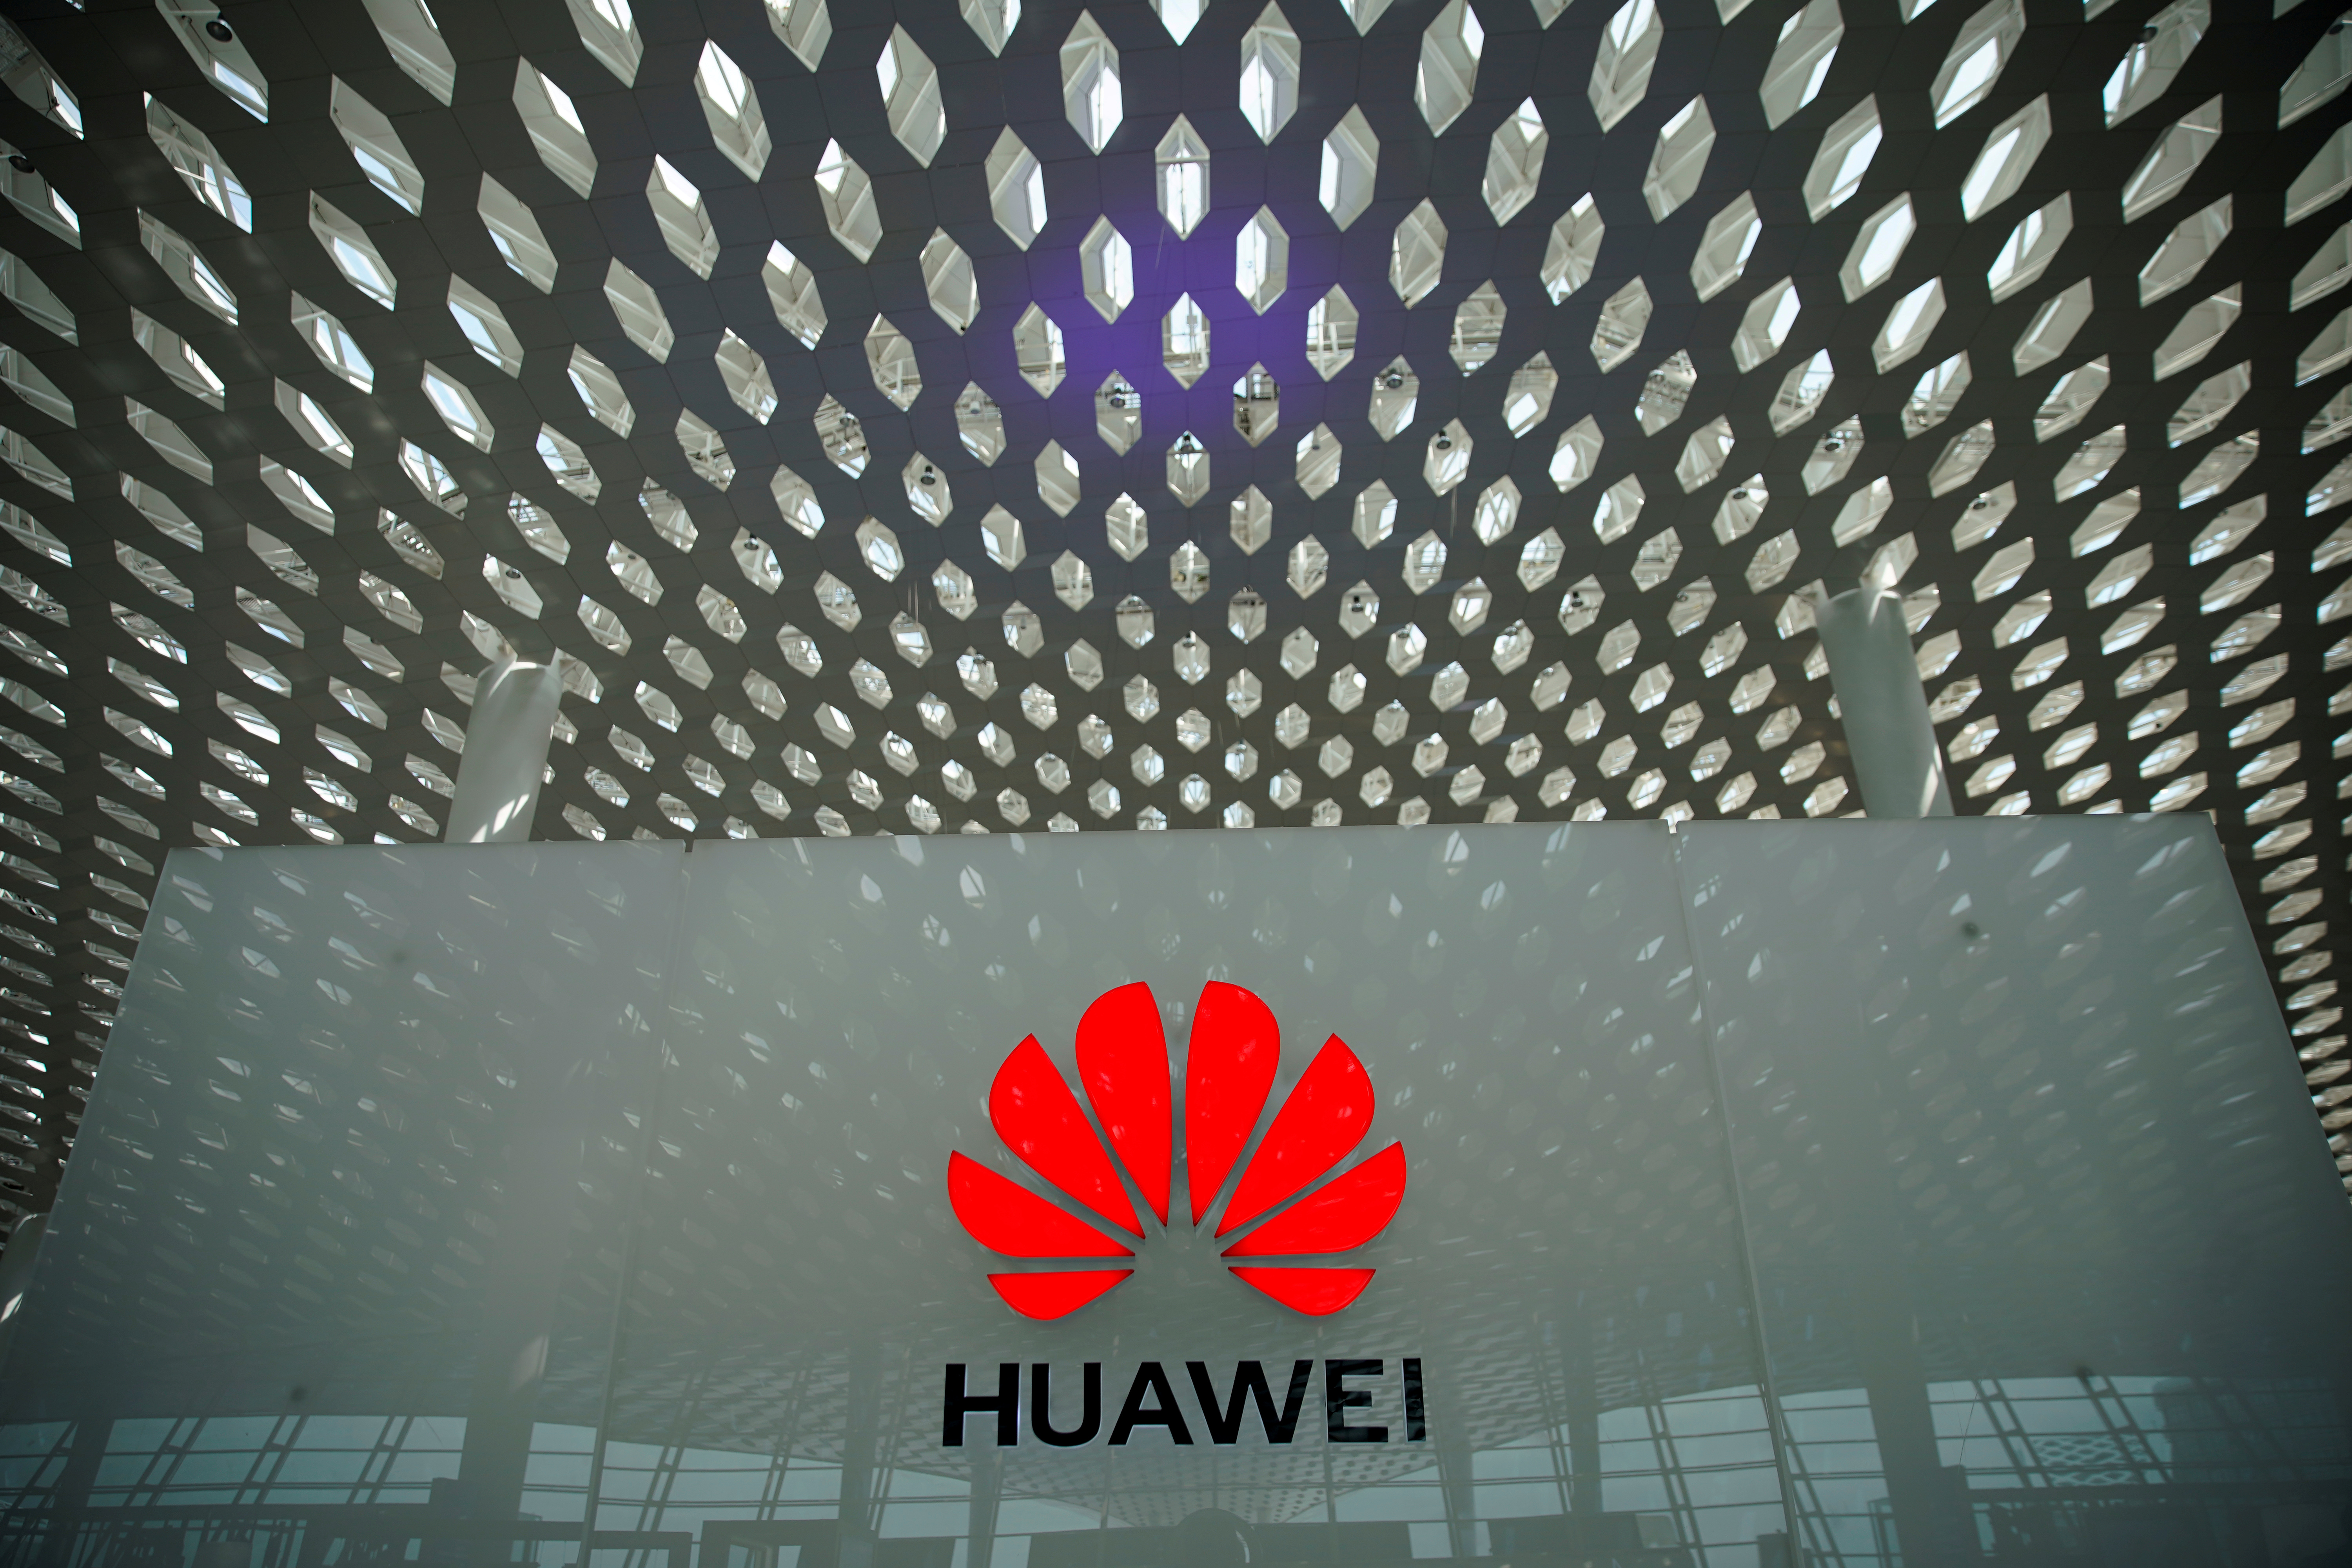 A Huawei company logo at the Shenzhen International Airport in Shenzhen, Guangdong province, China June 17, 2019. REUTERS/Aly Song/File Photo/File Photo